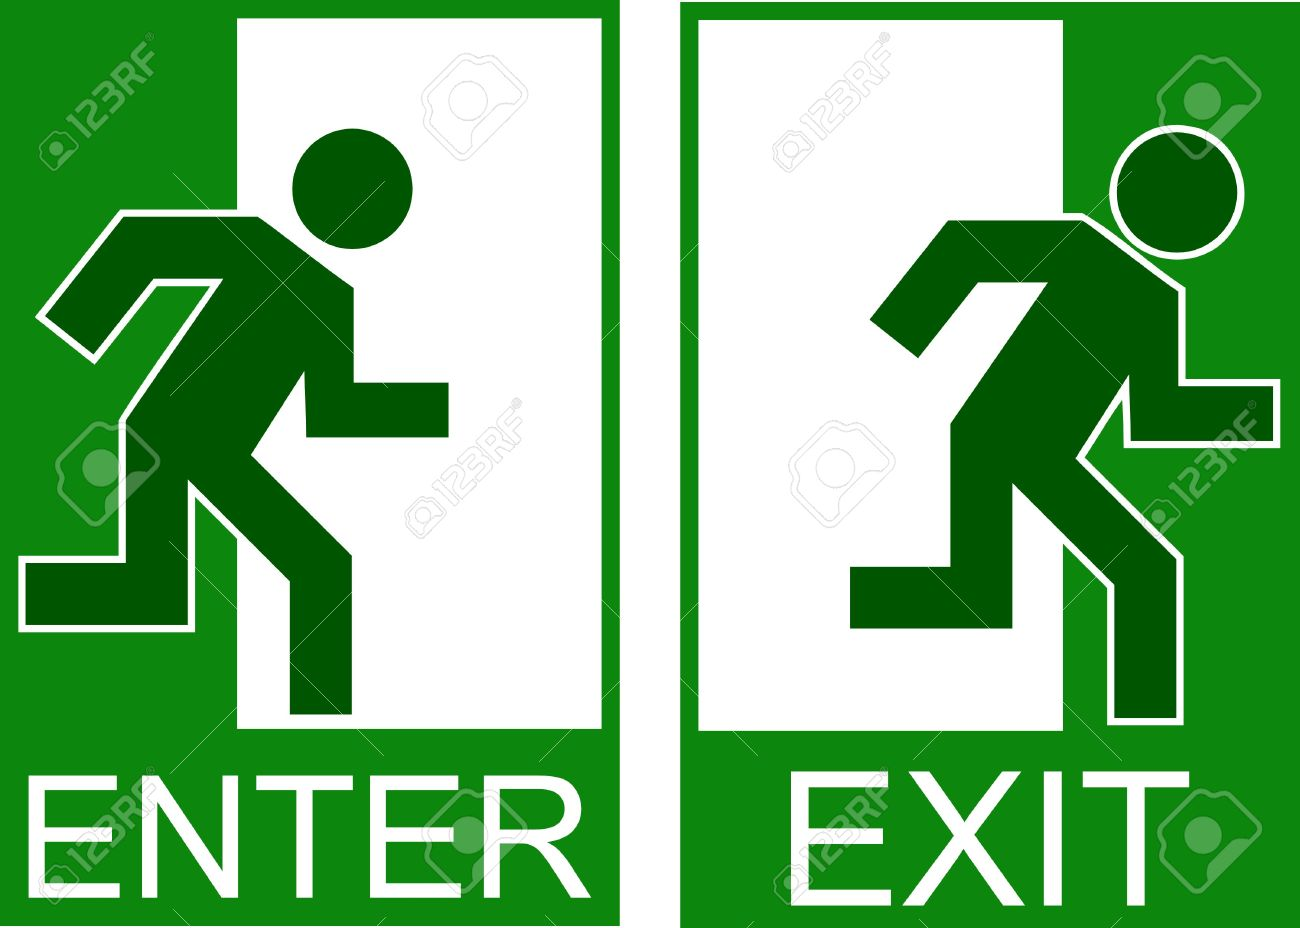 enter exit sign Stock Vector - 3303027